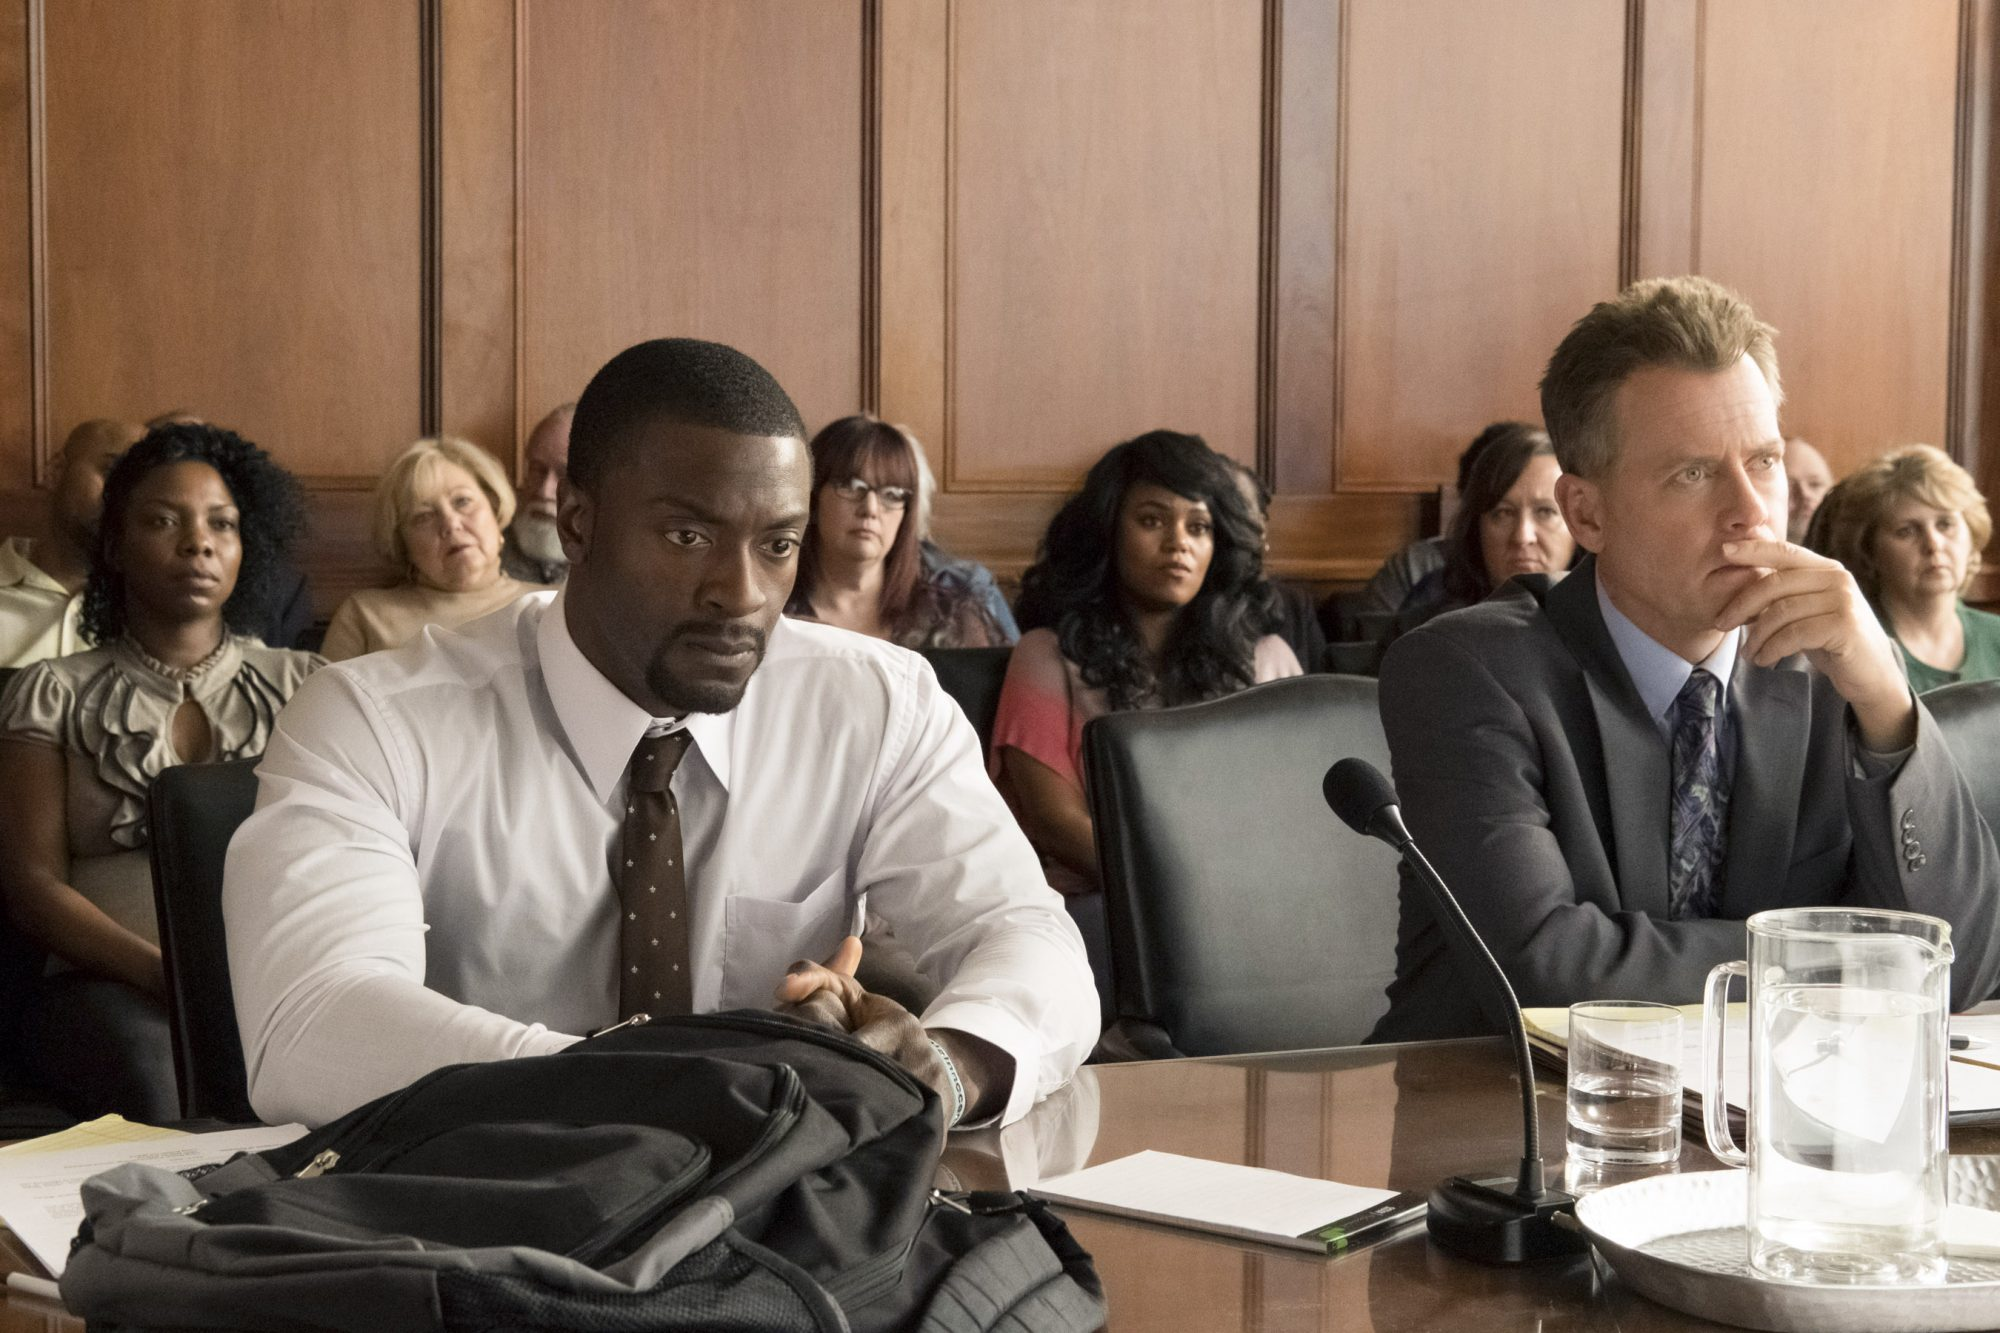 Aldis Hodge (left) as Brian Banks and Greg Kinnear (right) as Justin Brooks in Tom Shadyac's BRIAN BANKS, a Bleecker Street release. Credit: Katherine Bomboy / Bleecker Street